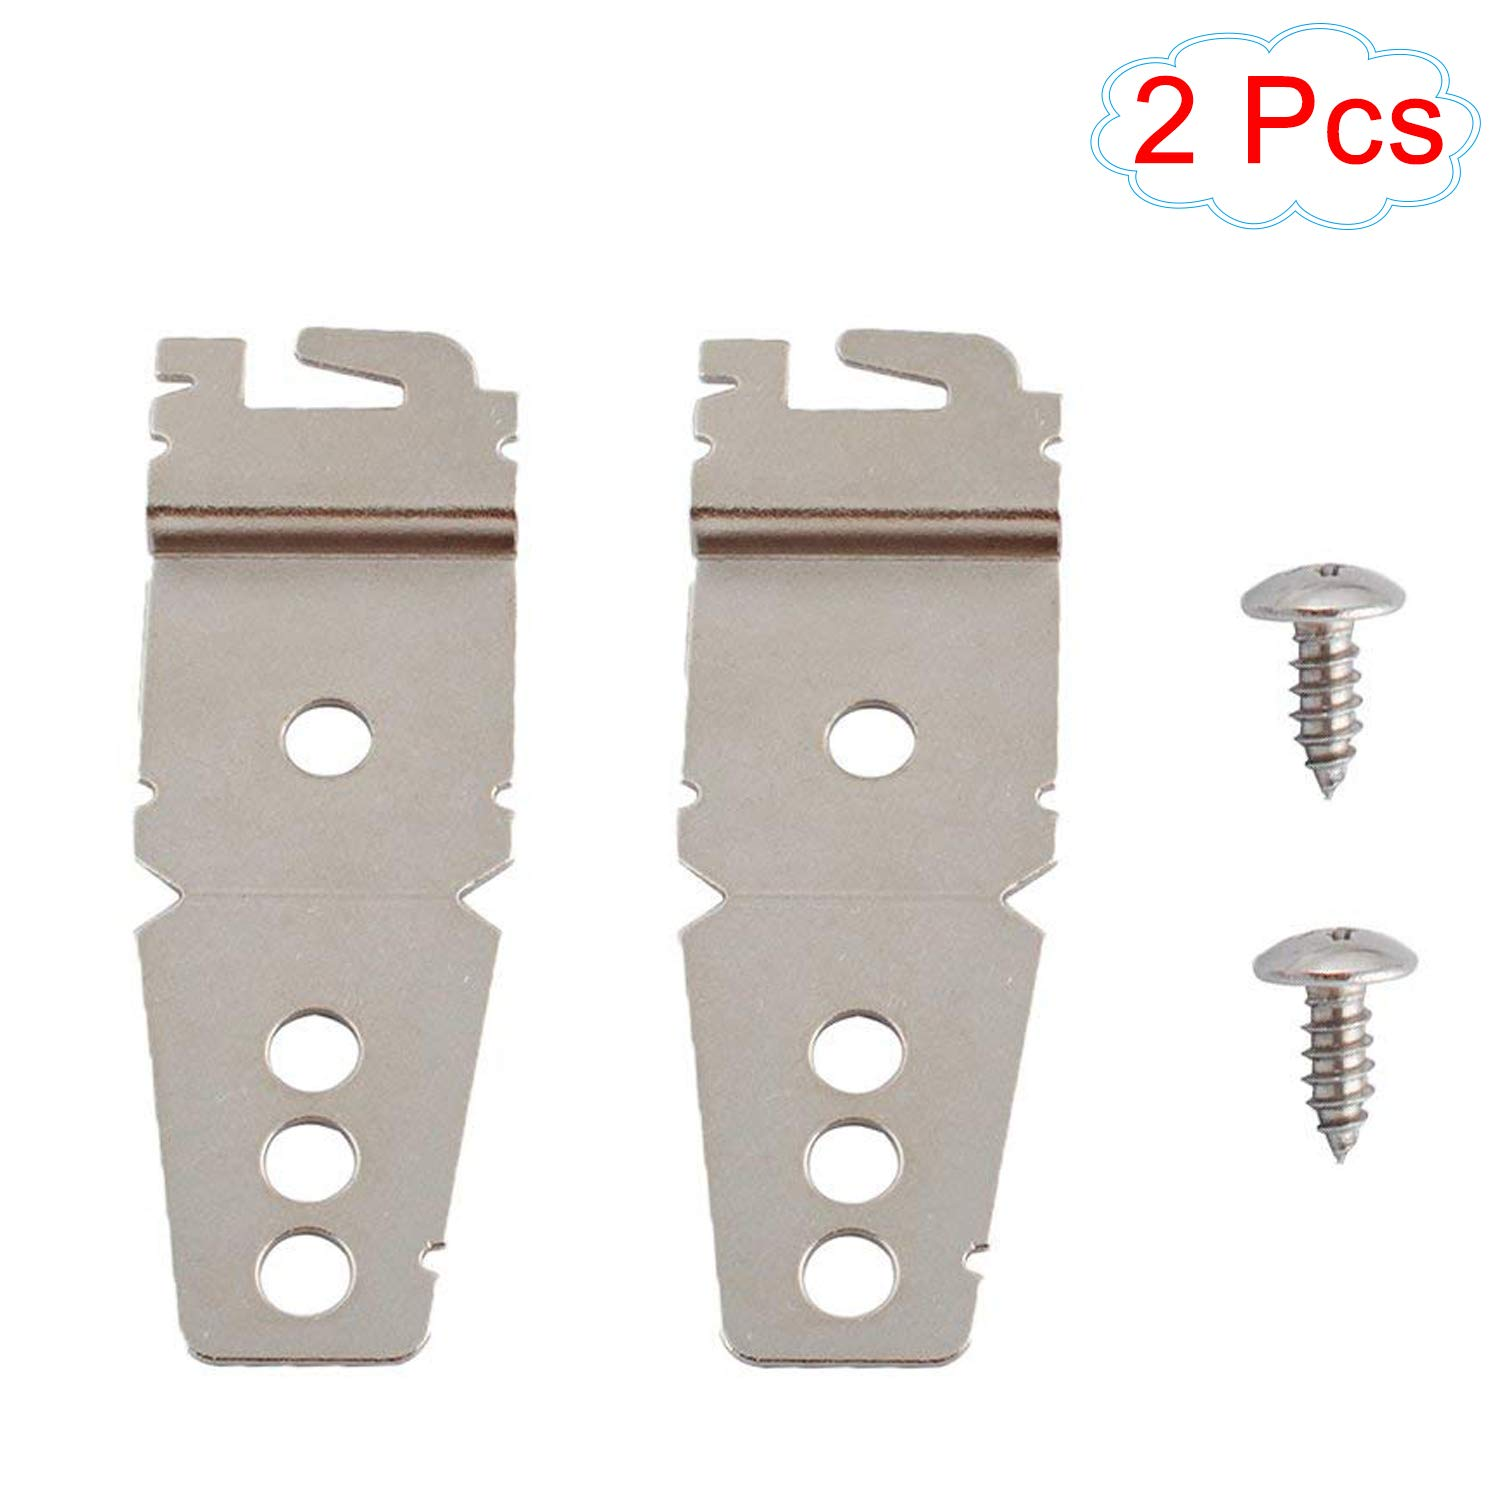 8269145 Dishwasher Brackets Mounting Bracket Clips Replacement for Whirlpool Kenmore Sears Maytag Amana Jenn-Air Crosley Roper Mag WP8269145